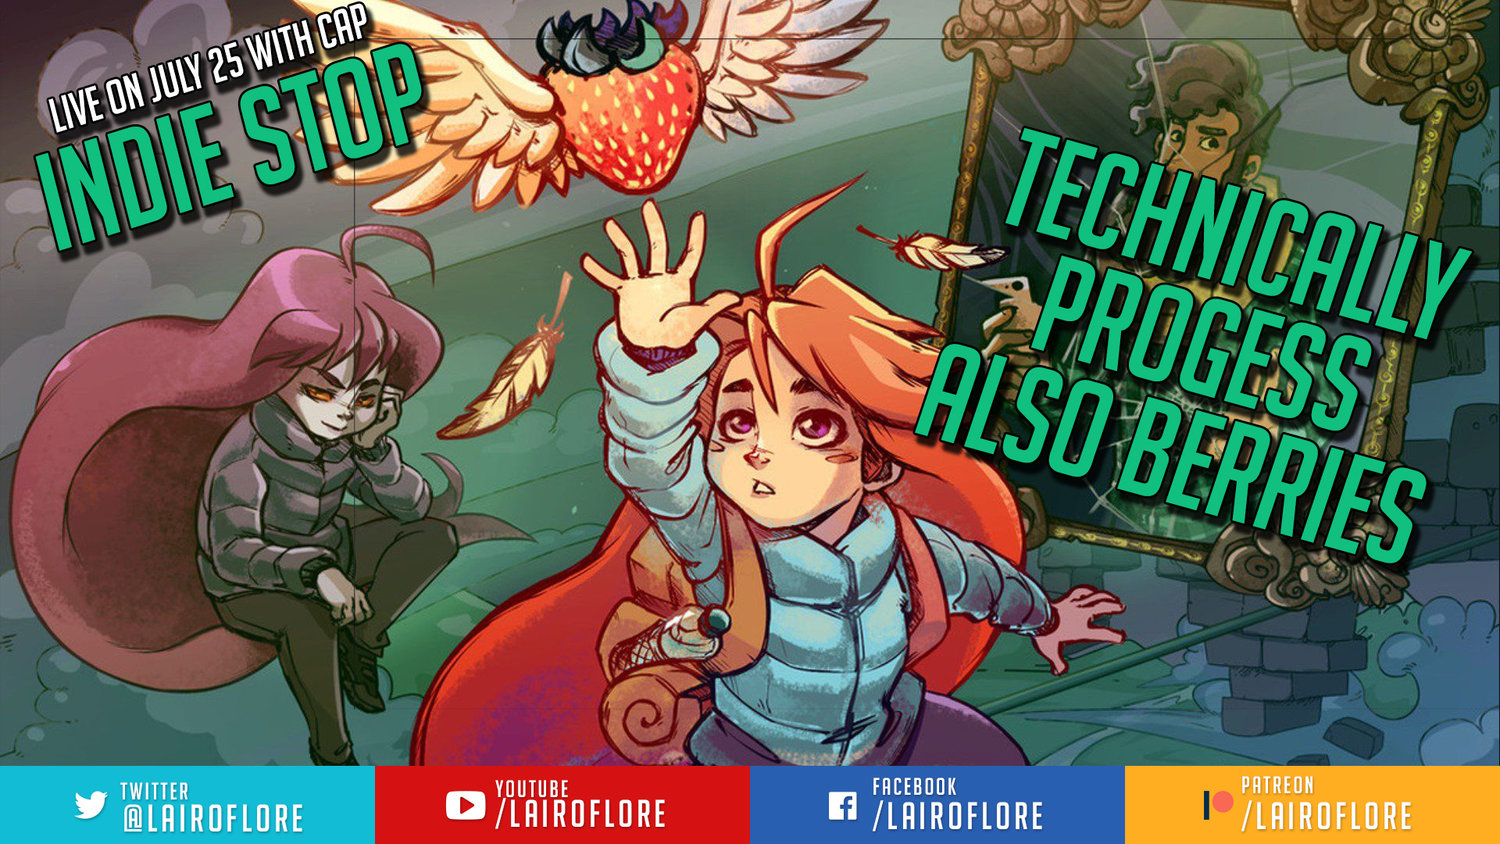 07 25 Indie Stop Celeste Technically Progress Also Berries Lair Of Lore Most often, this applies when an individual has missed some cue to stop, thus creating a useless or bothersome excess. 07 25 indie stop celeste technically progress also berries lair of lore